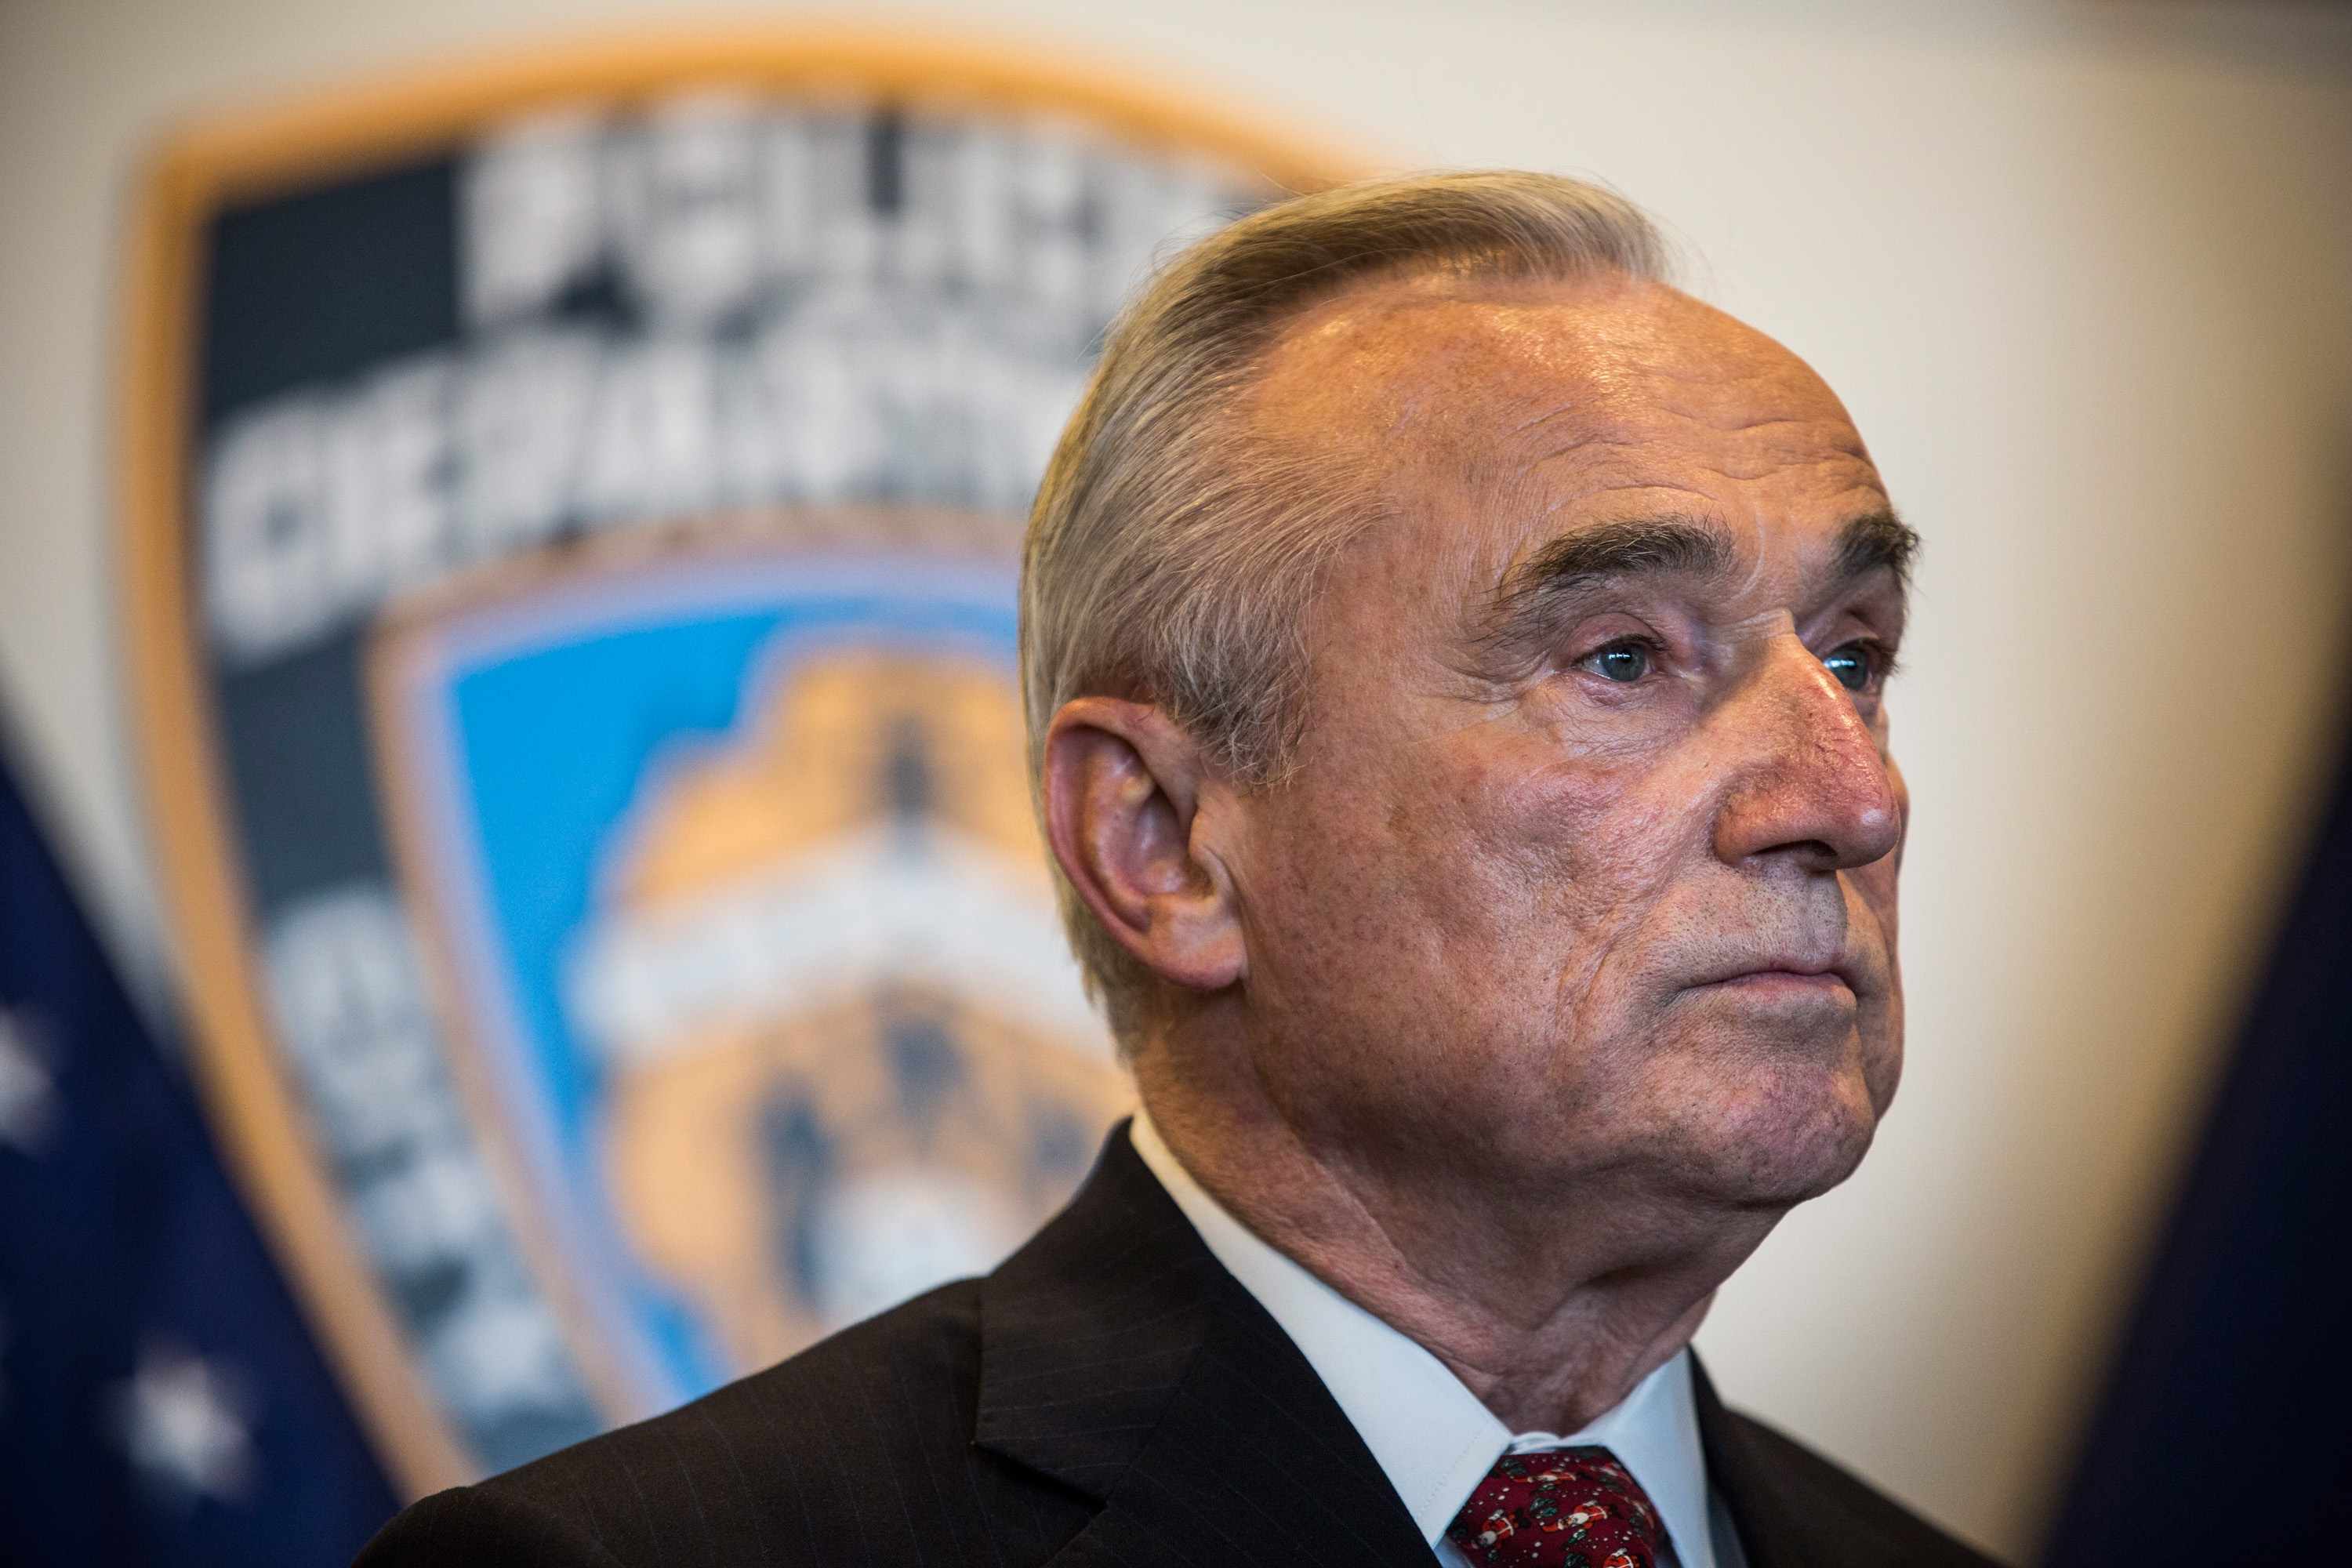 New York Police Department (NYPD) Commissioner Bill Bratton attends a press conference after witnessing police being retrained with new guidelines at the Police Academy on December 4, 2014 in the College Point neighborhood of the Queens borough of in New York City.